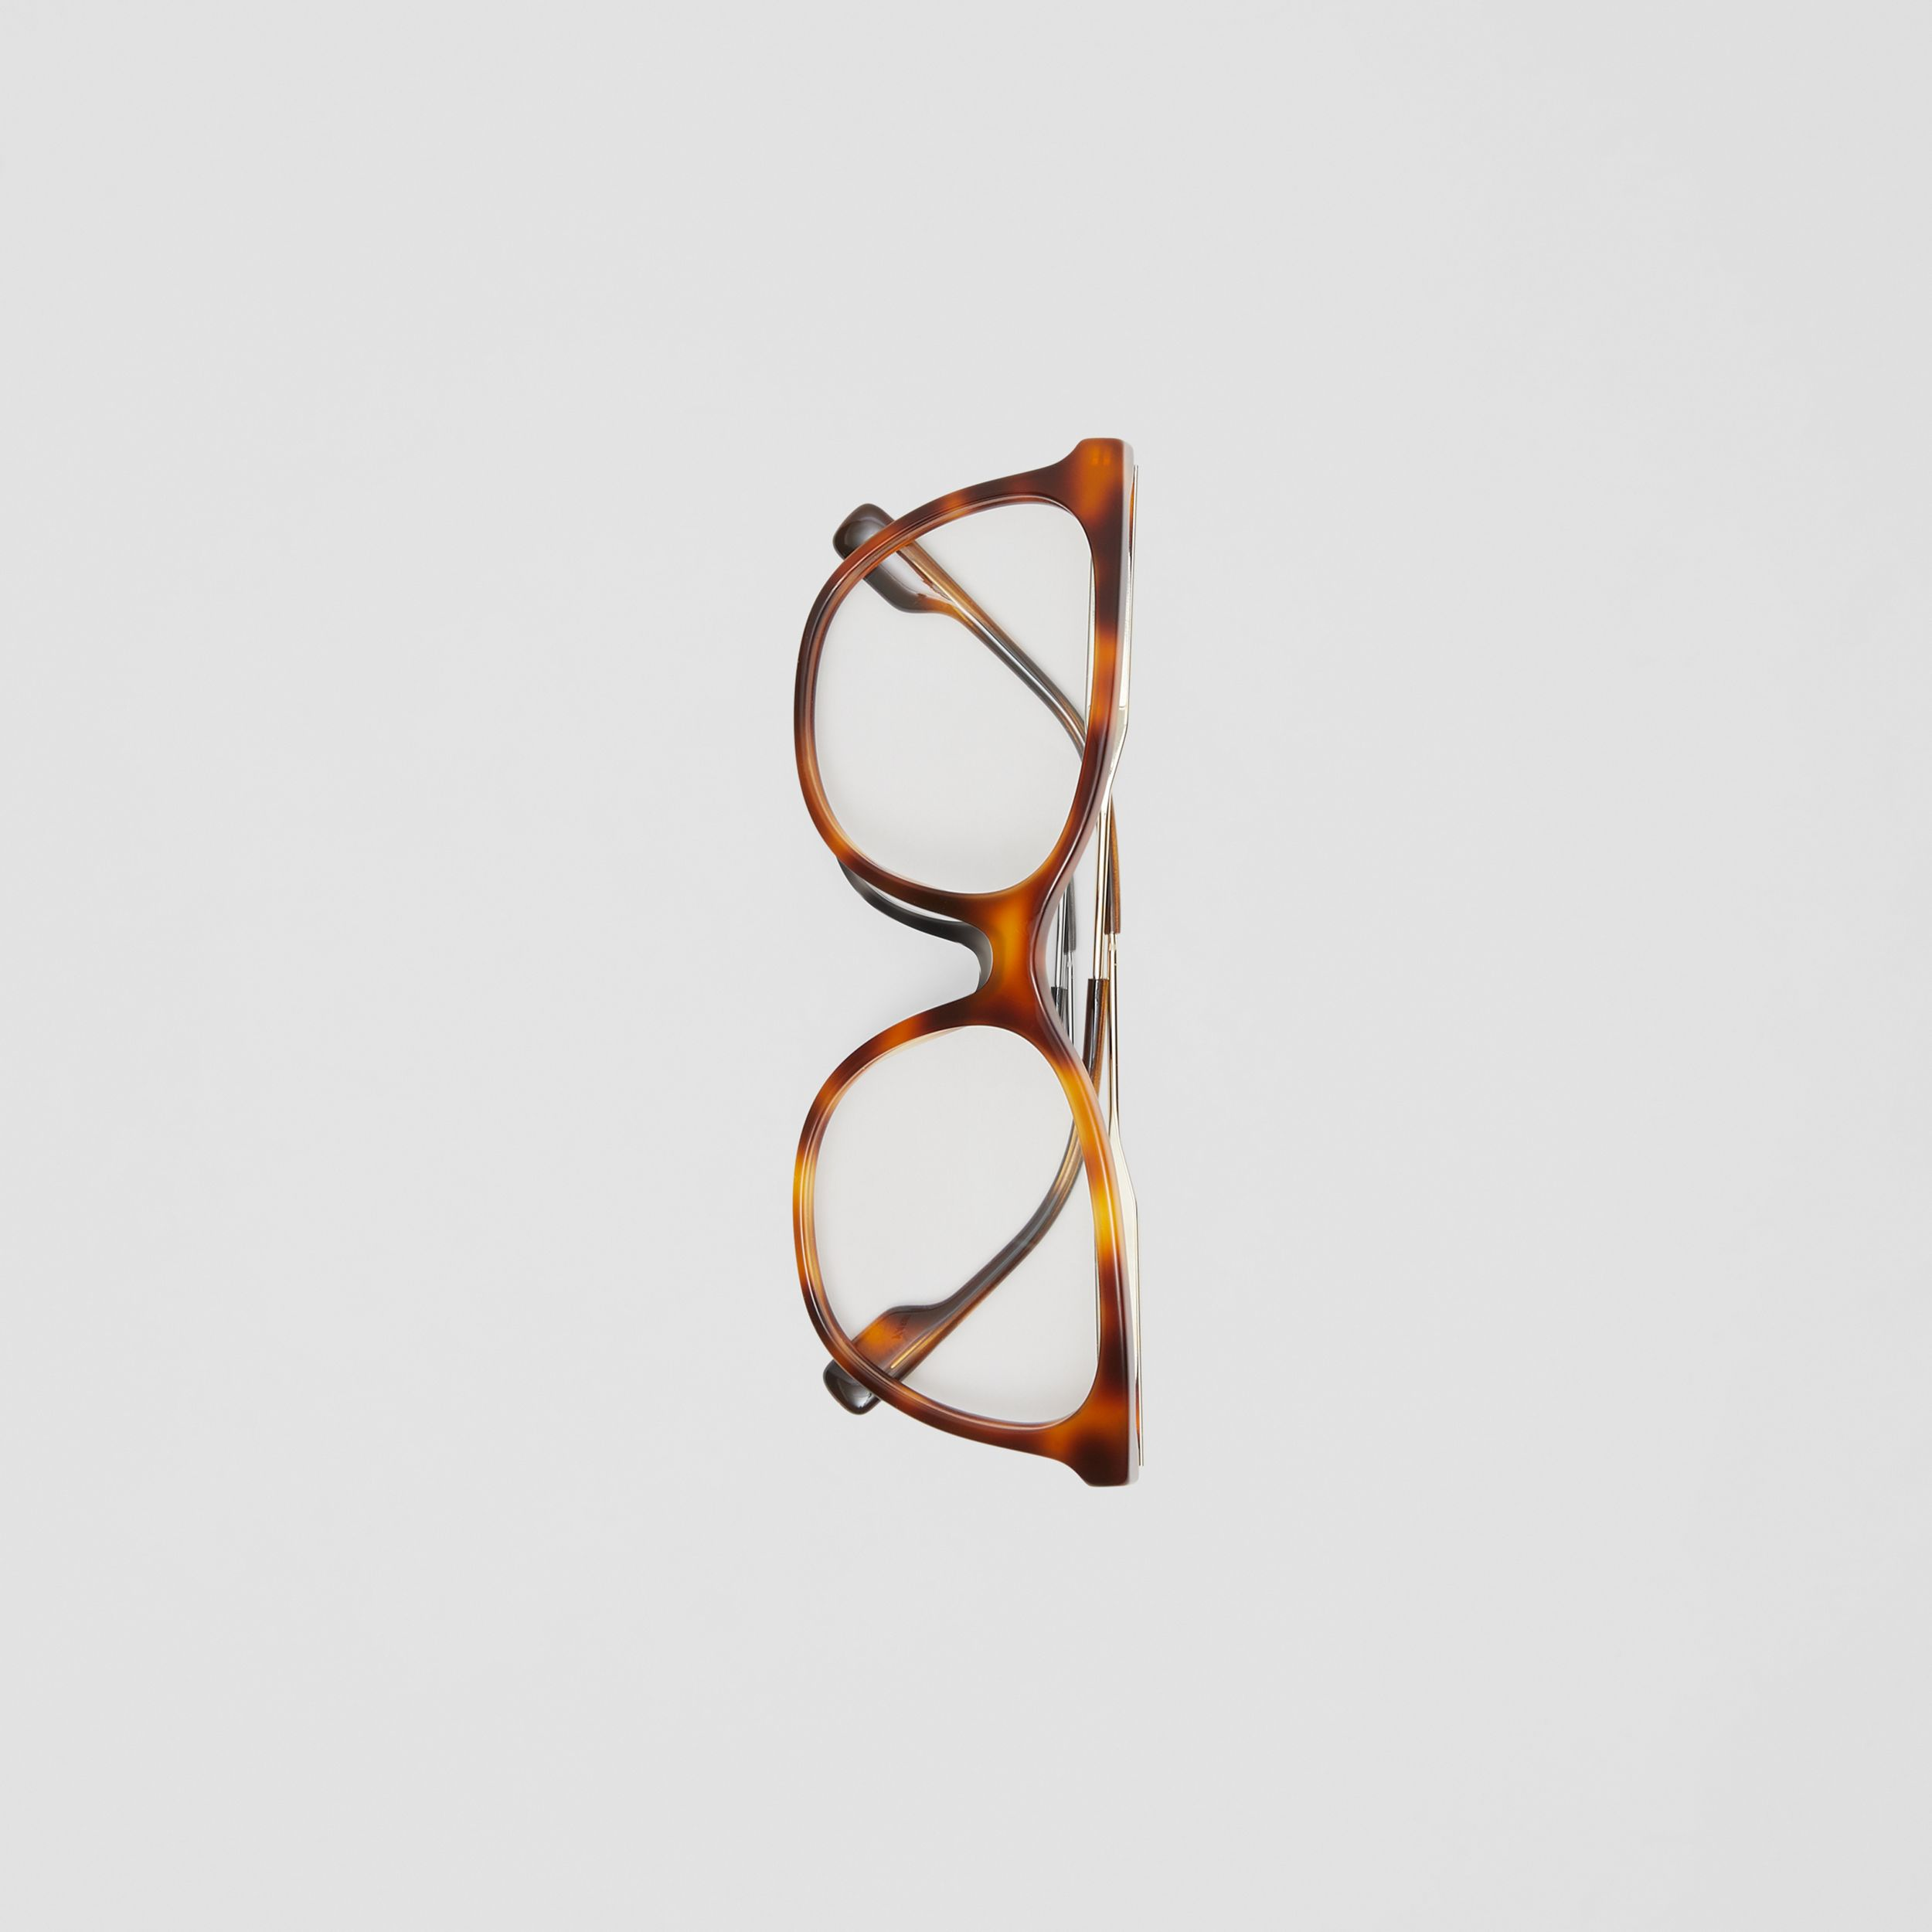 Cat-eye Optical Frames in Dark Amber Tortoiseshell - Women | Burberry Australia - 4